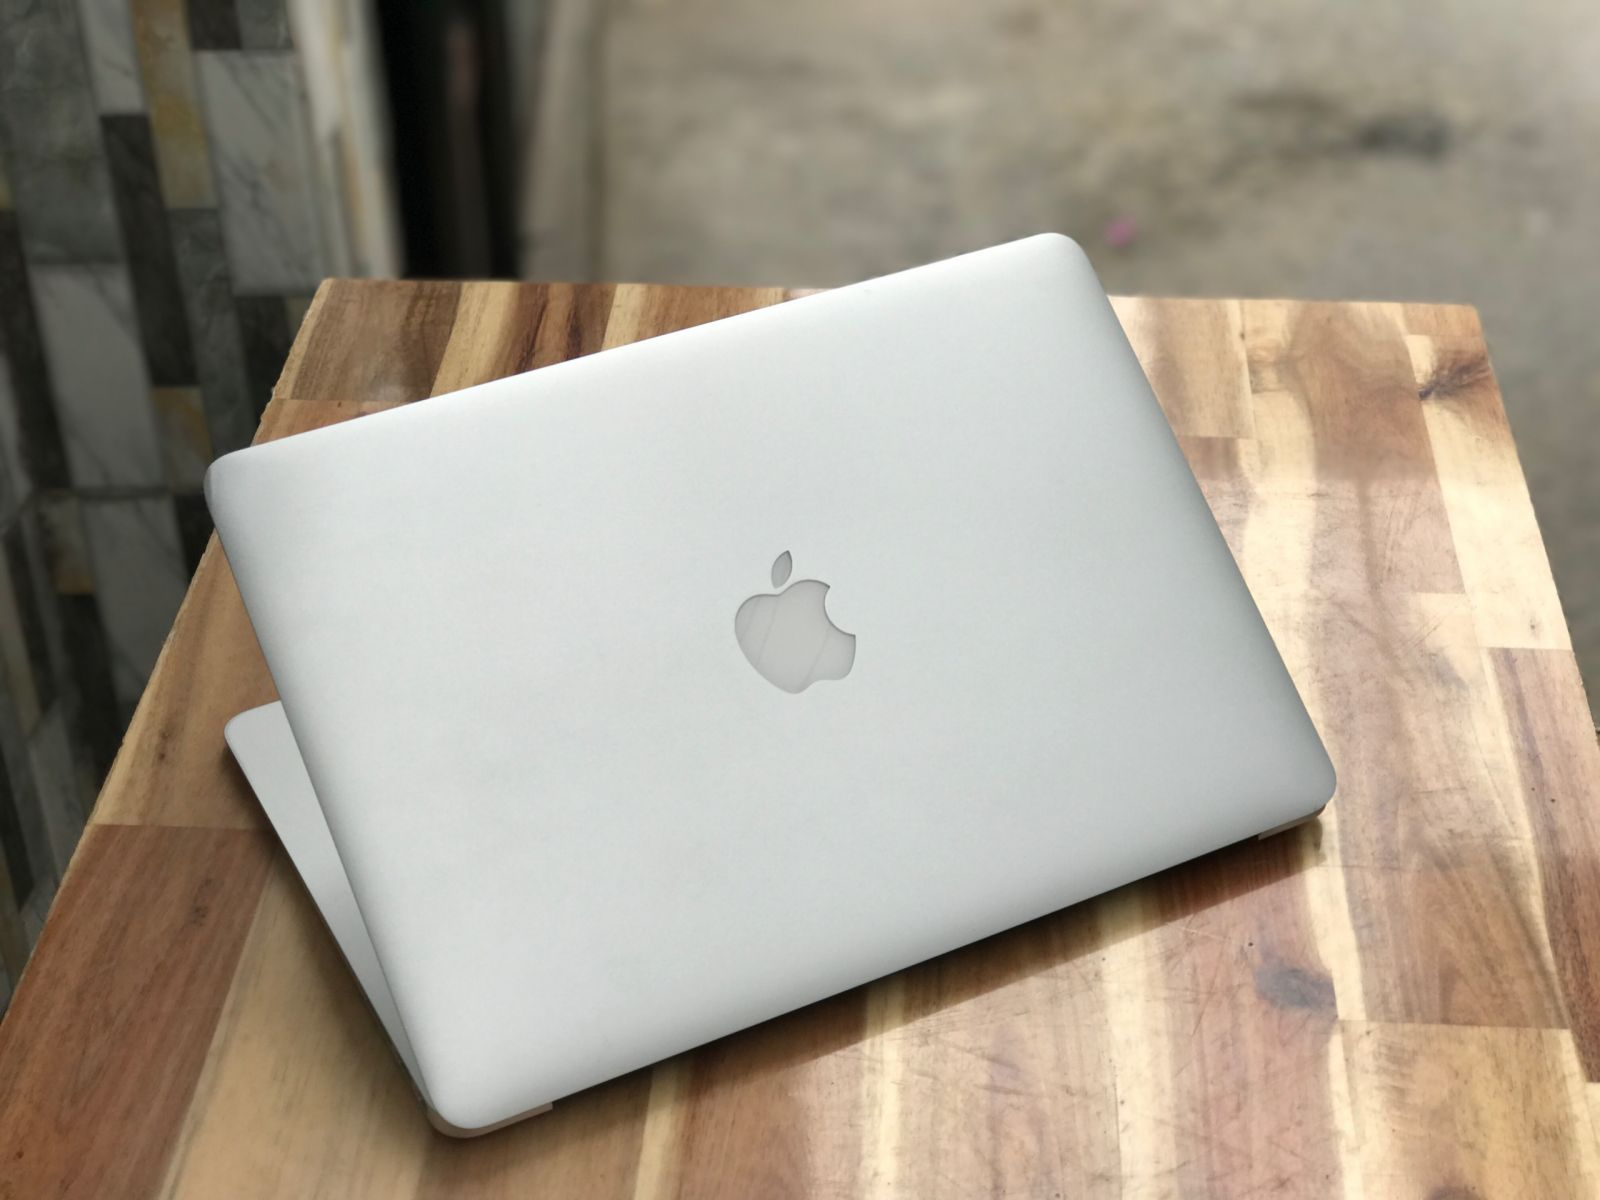 Macbook Air 2016 13in, i5 8G SSD256 Pin Khủng 5-10h Đẹp zin 100%2